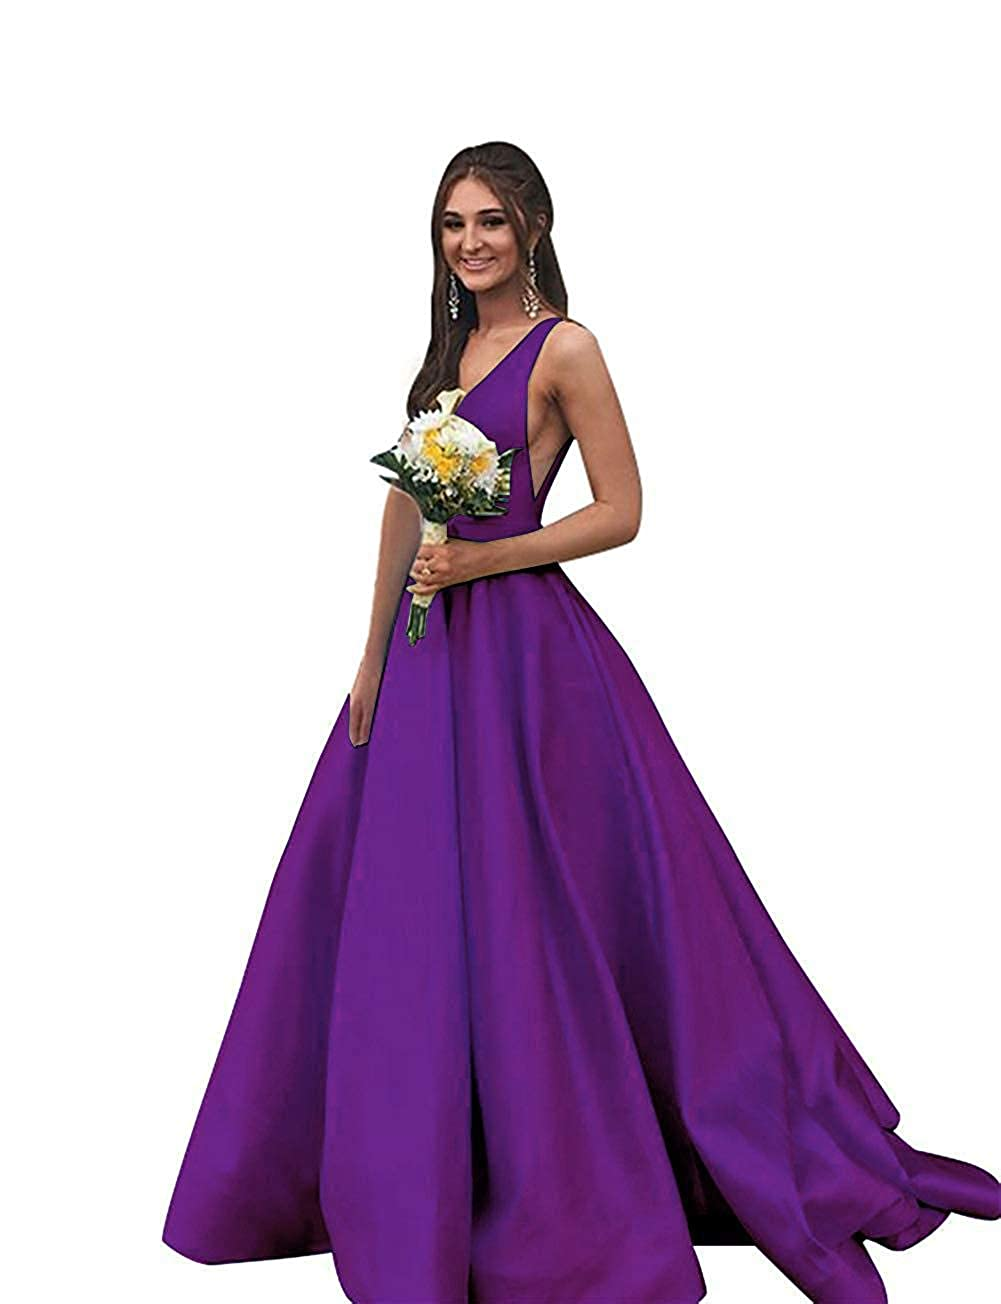 Purple liangjinsmkj Prom Dresses Long Satin Aline V Neck Evening Ball Gowns for Women with Pockets